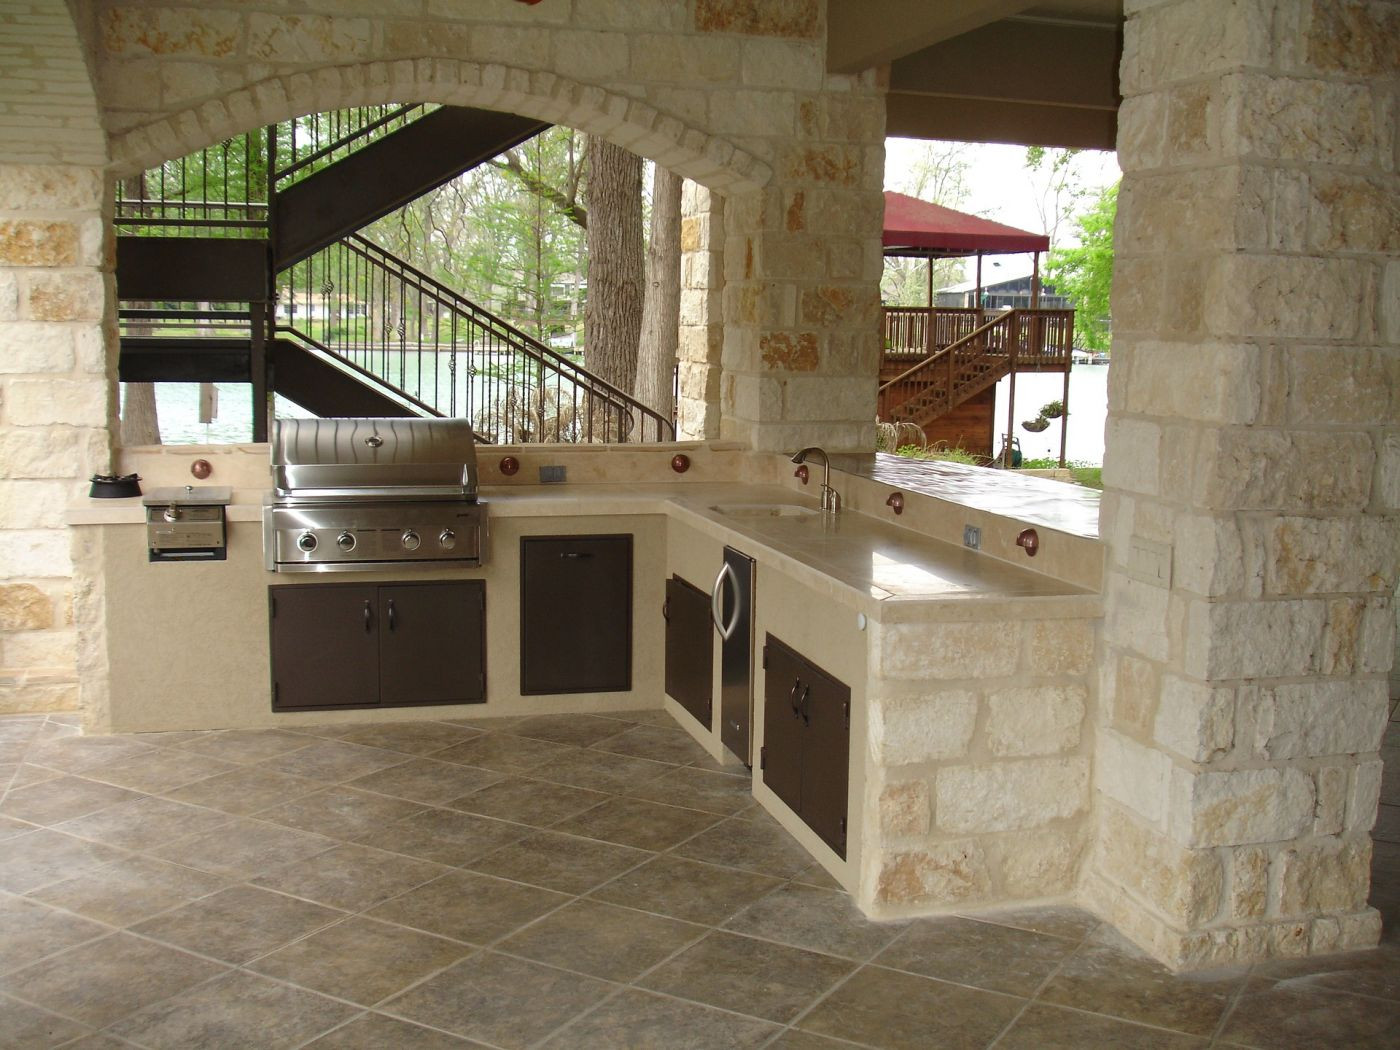 The Benefits of an Outdoor Kitchen